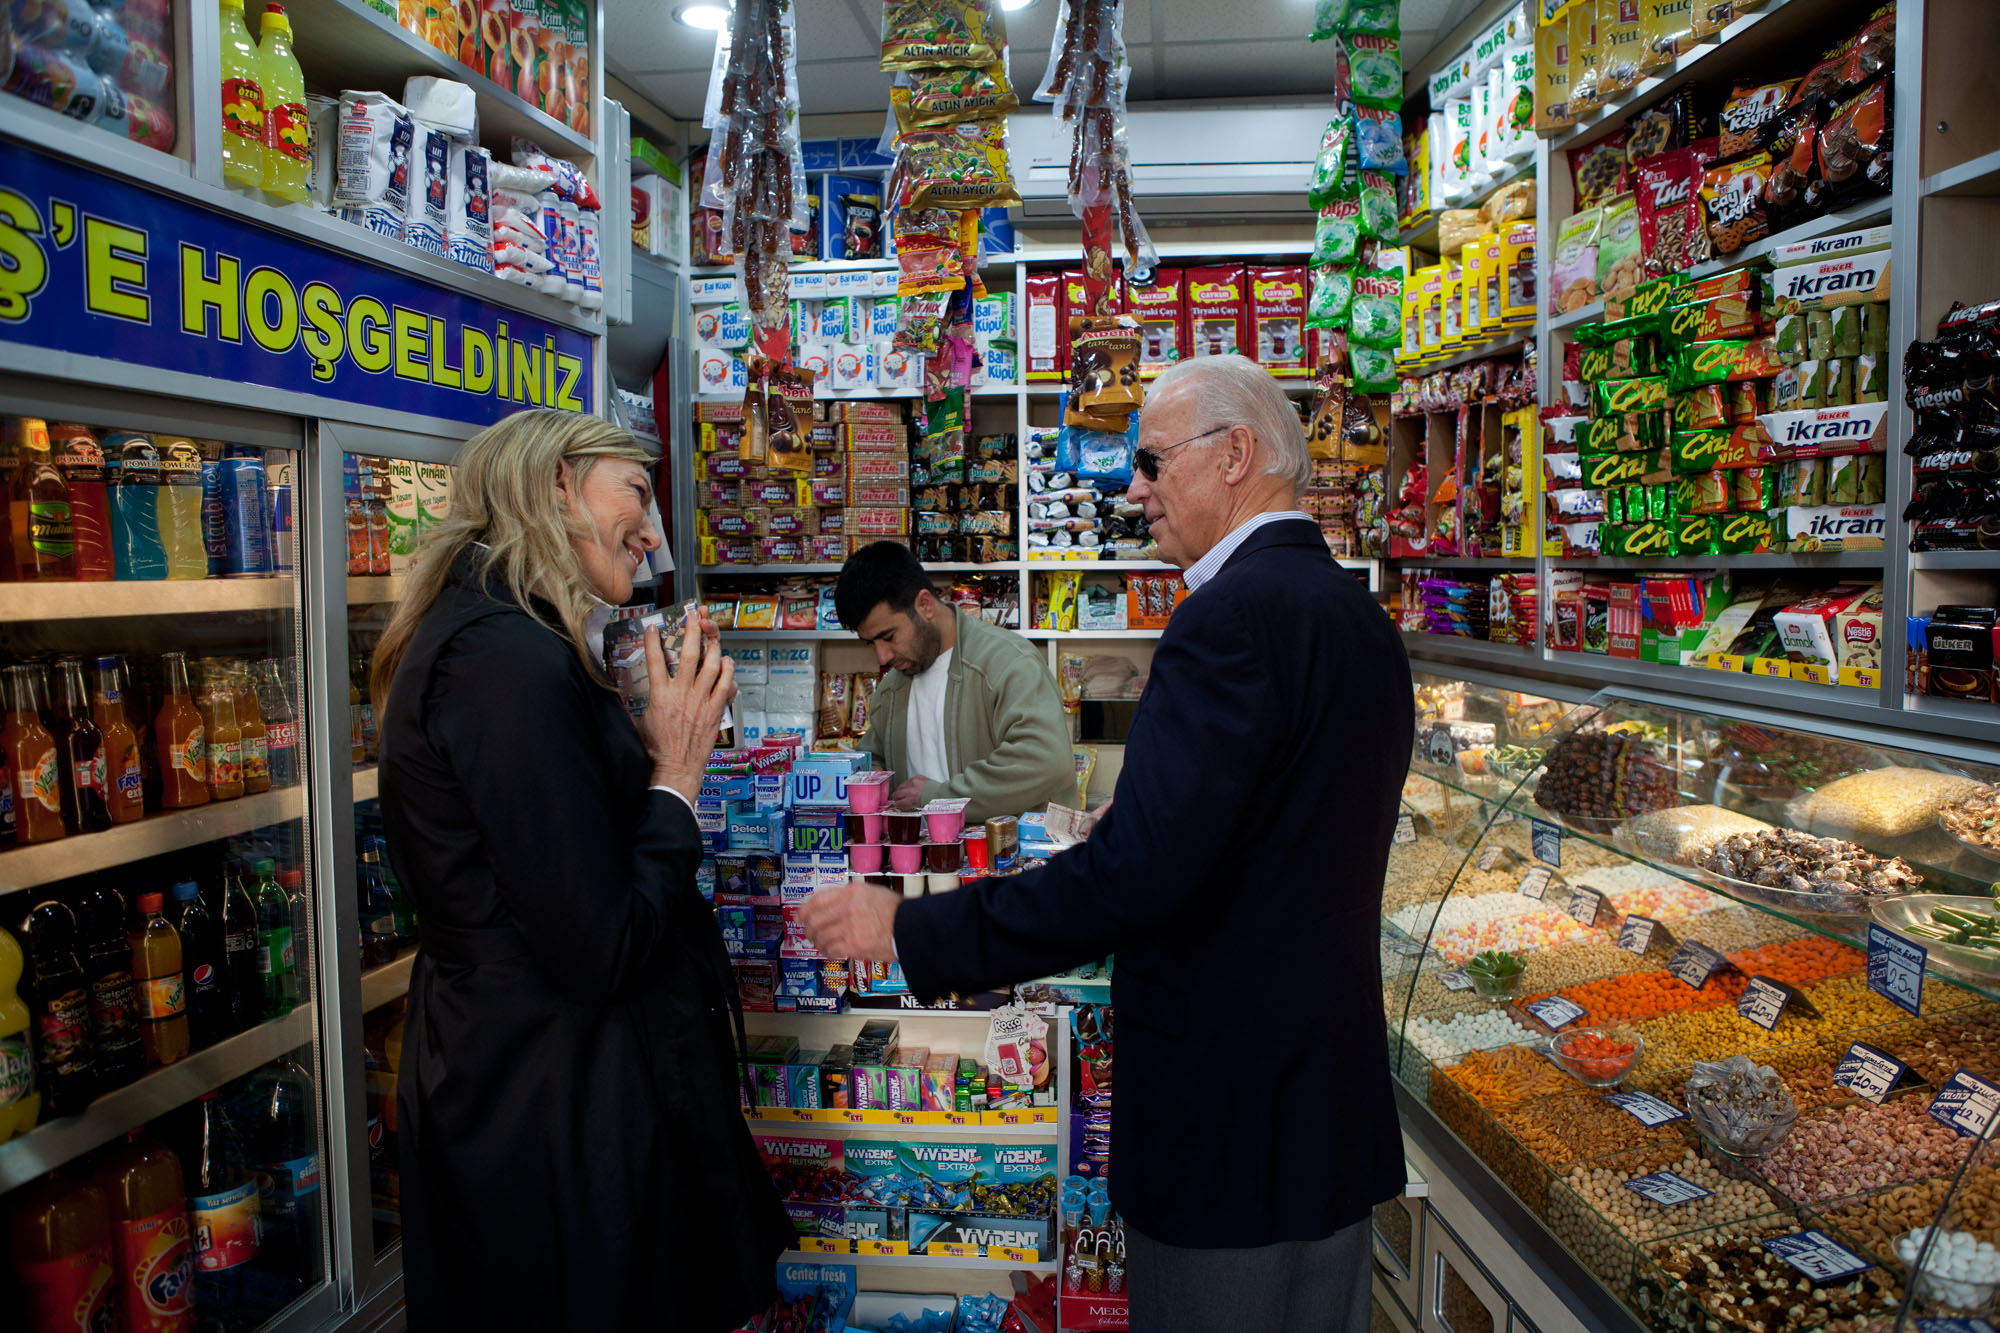 Vice President Joe Biden visits a shop in Istanbul